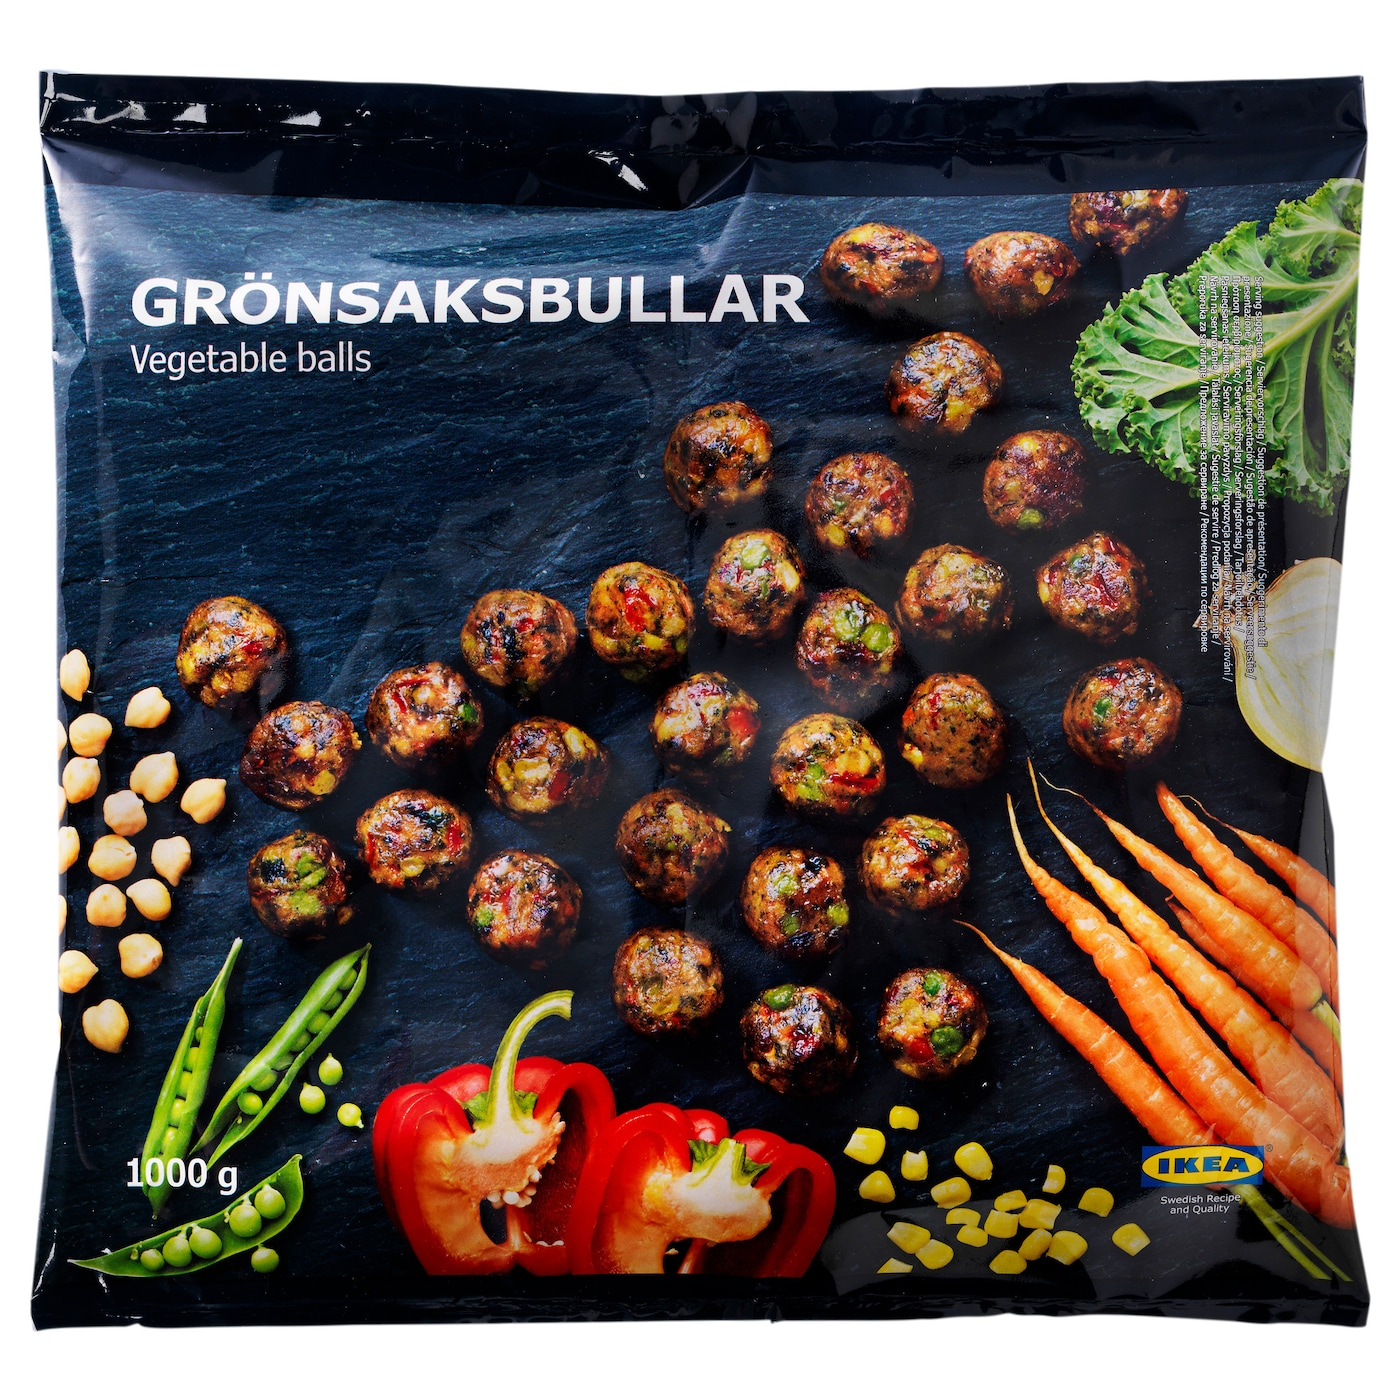 gr nsaksbullar vegetable balls frozen ikea ForIkea Vegetable Balls